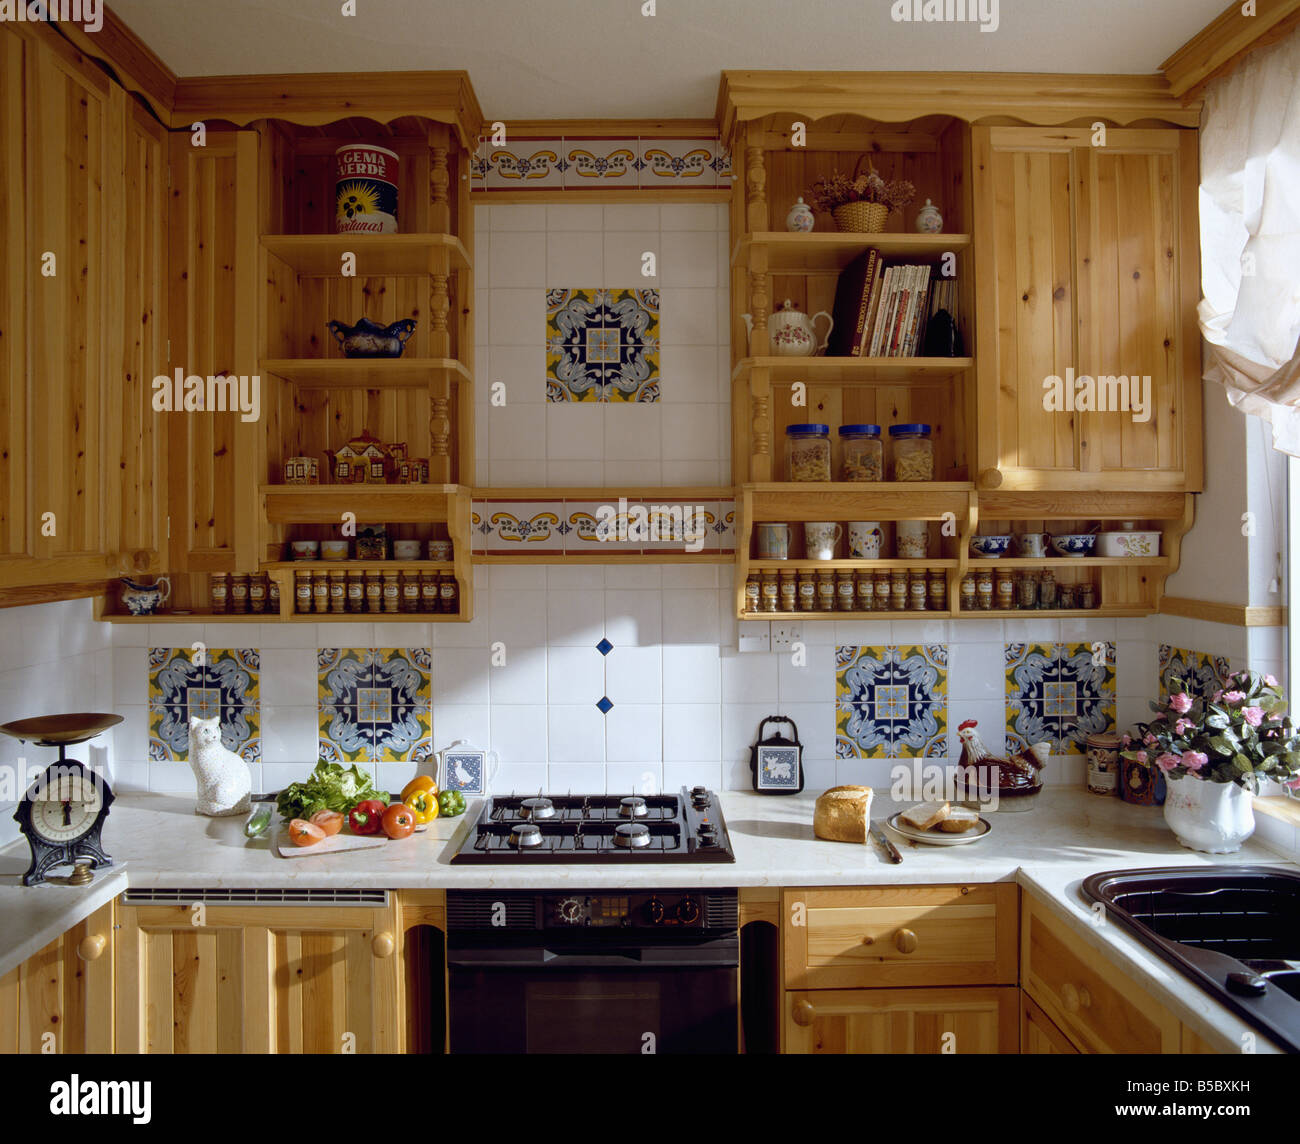 Uncategorized Kitchen Appliances In Spanish tiling appliances shelves shelving stock photos pine wall units and white tiled with decorative spanish tile inserts above worktop fitted